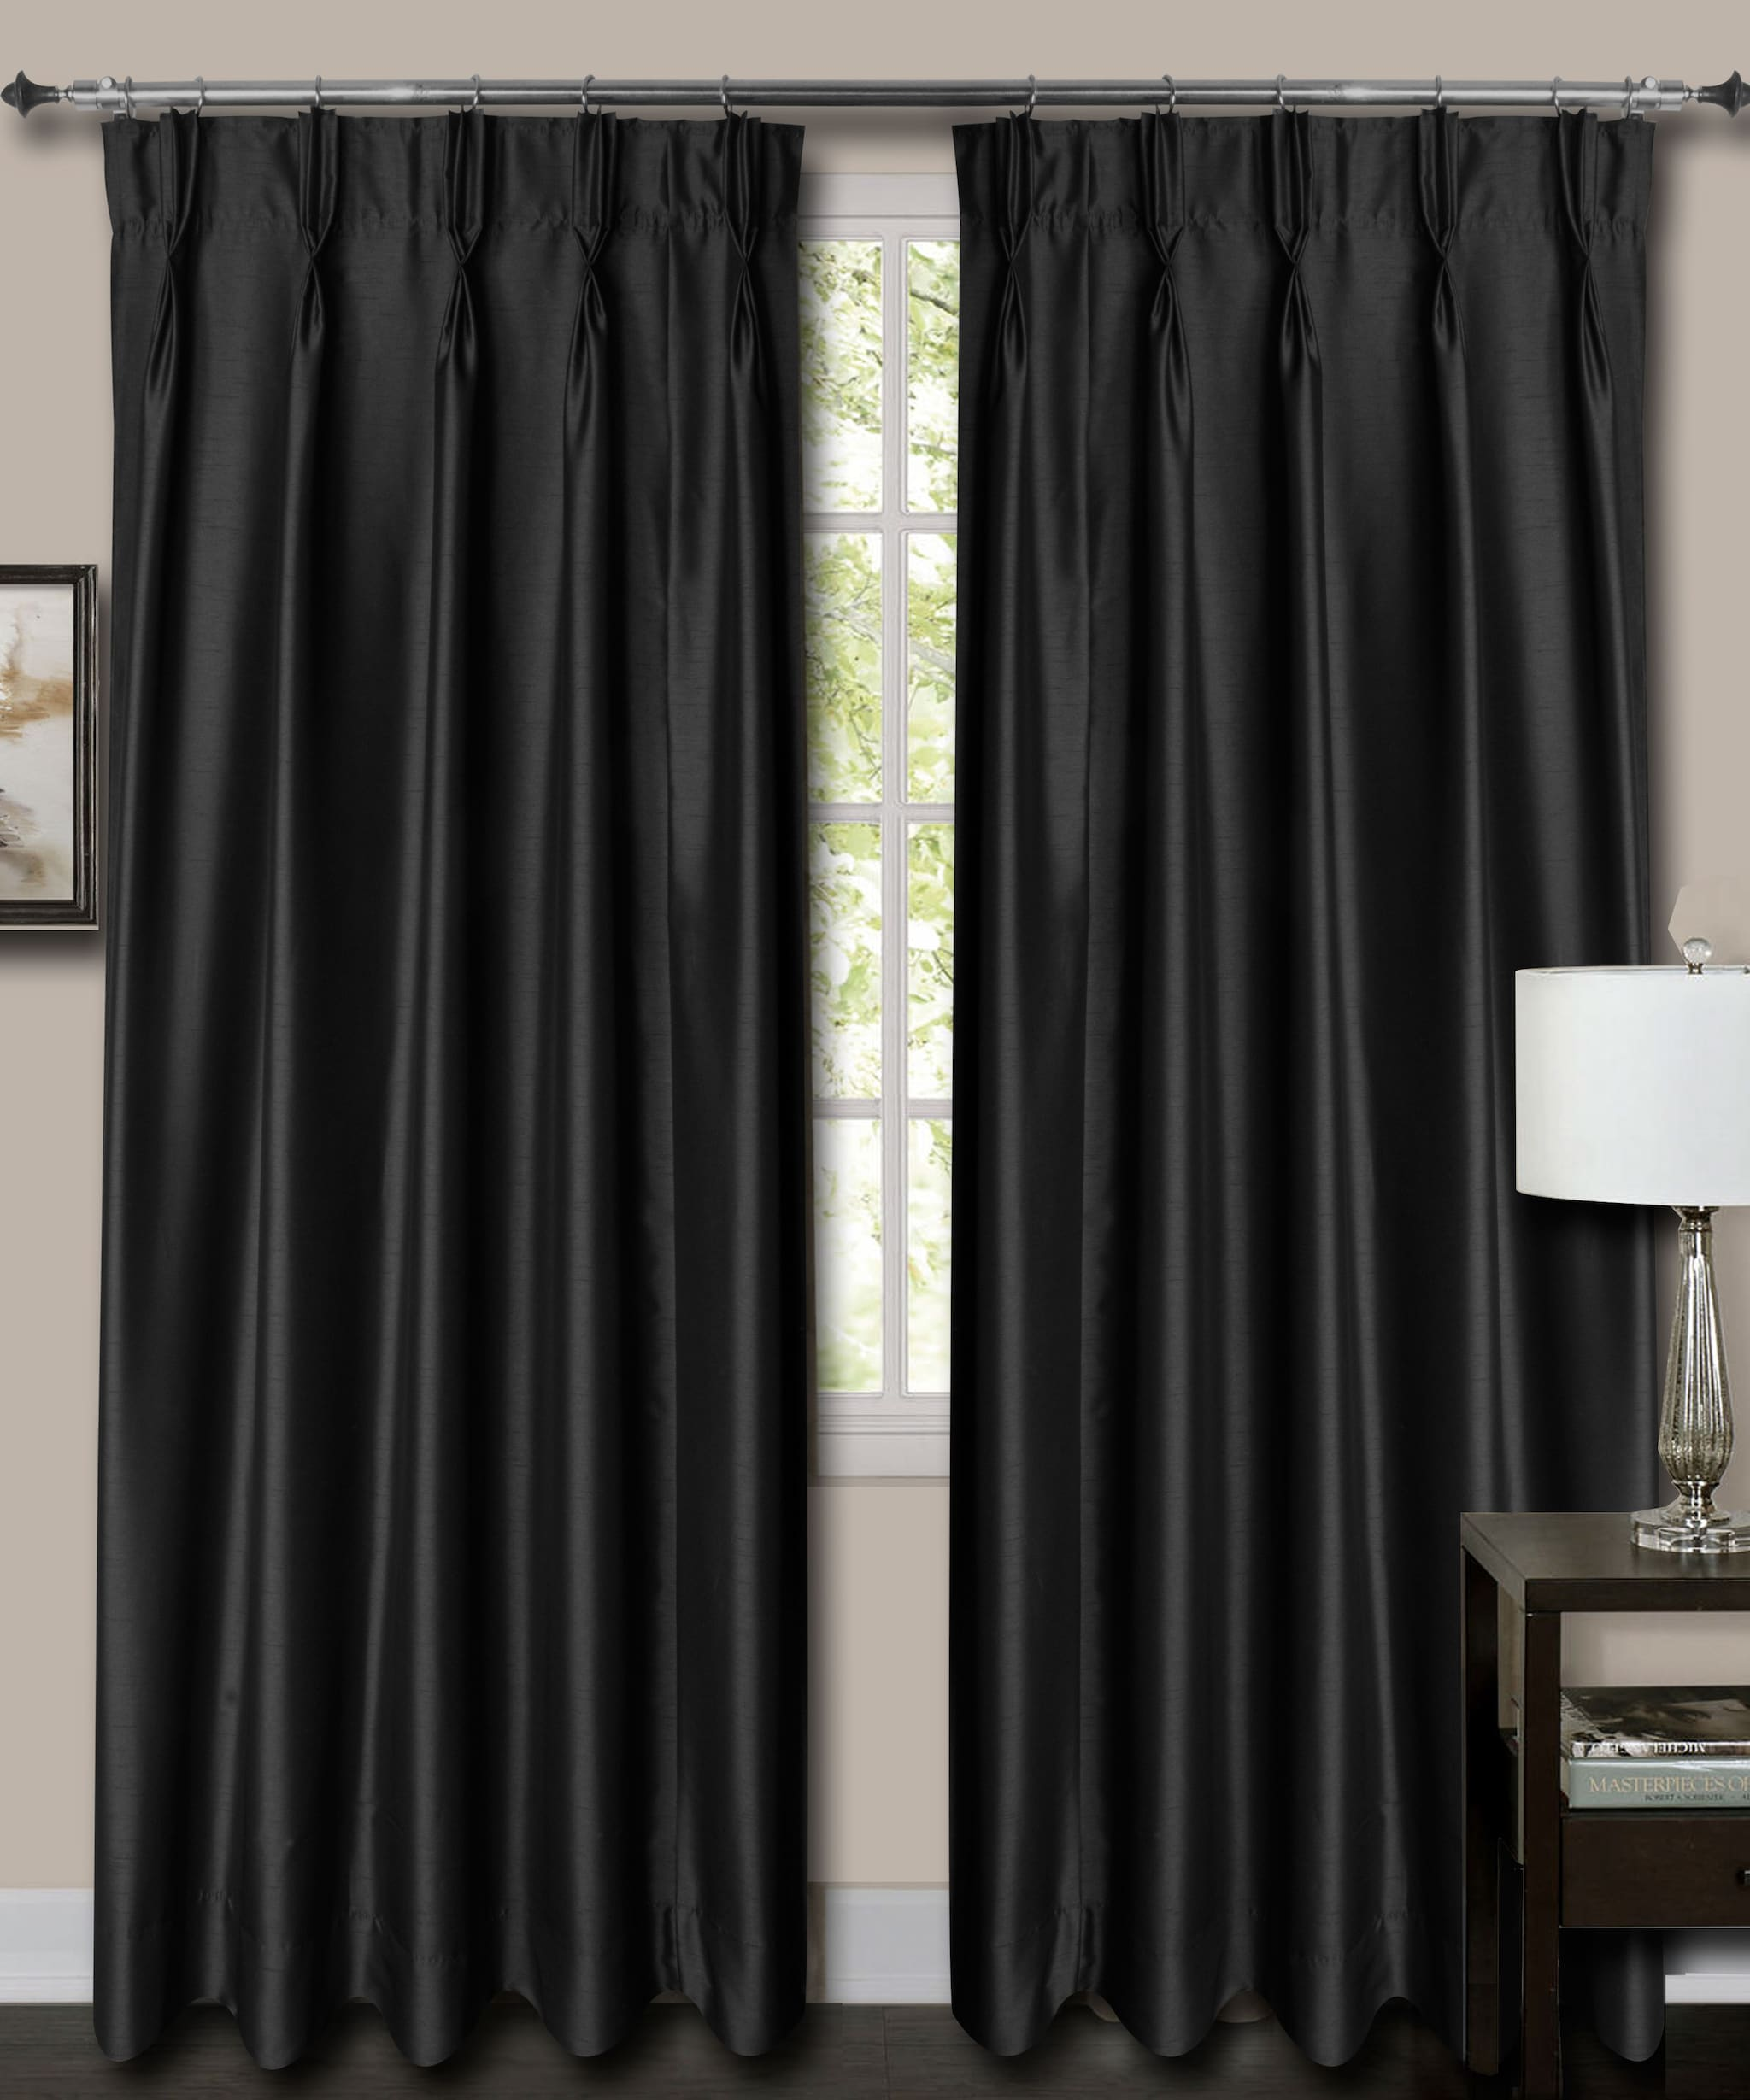 "French Pleat Top Black Faux Silk Dupioni Curtains. (52"" Wide,7 Feet Long,Without Lining)"